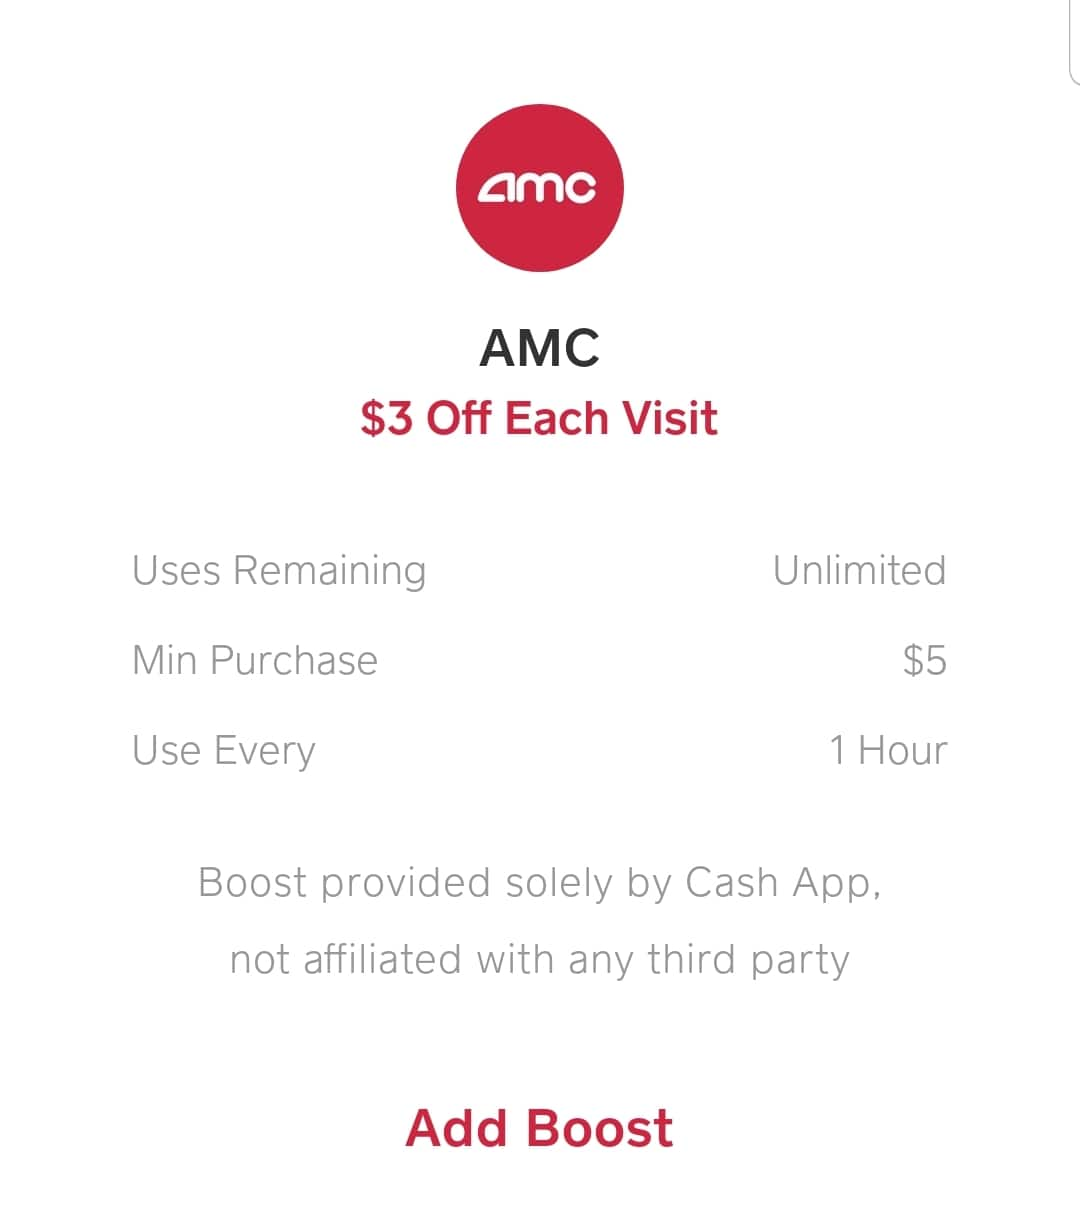 Cash app $3 unlimited AMC boost (Android and IOS)